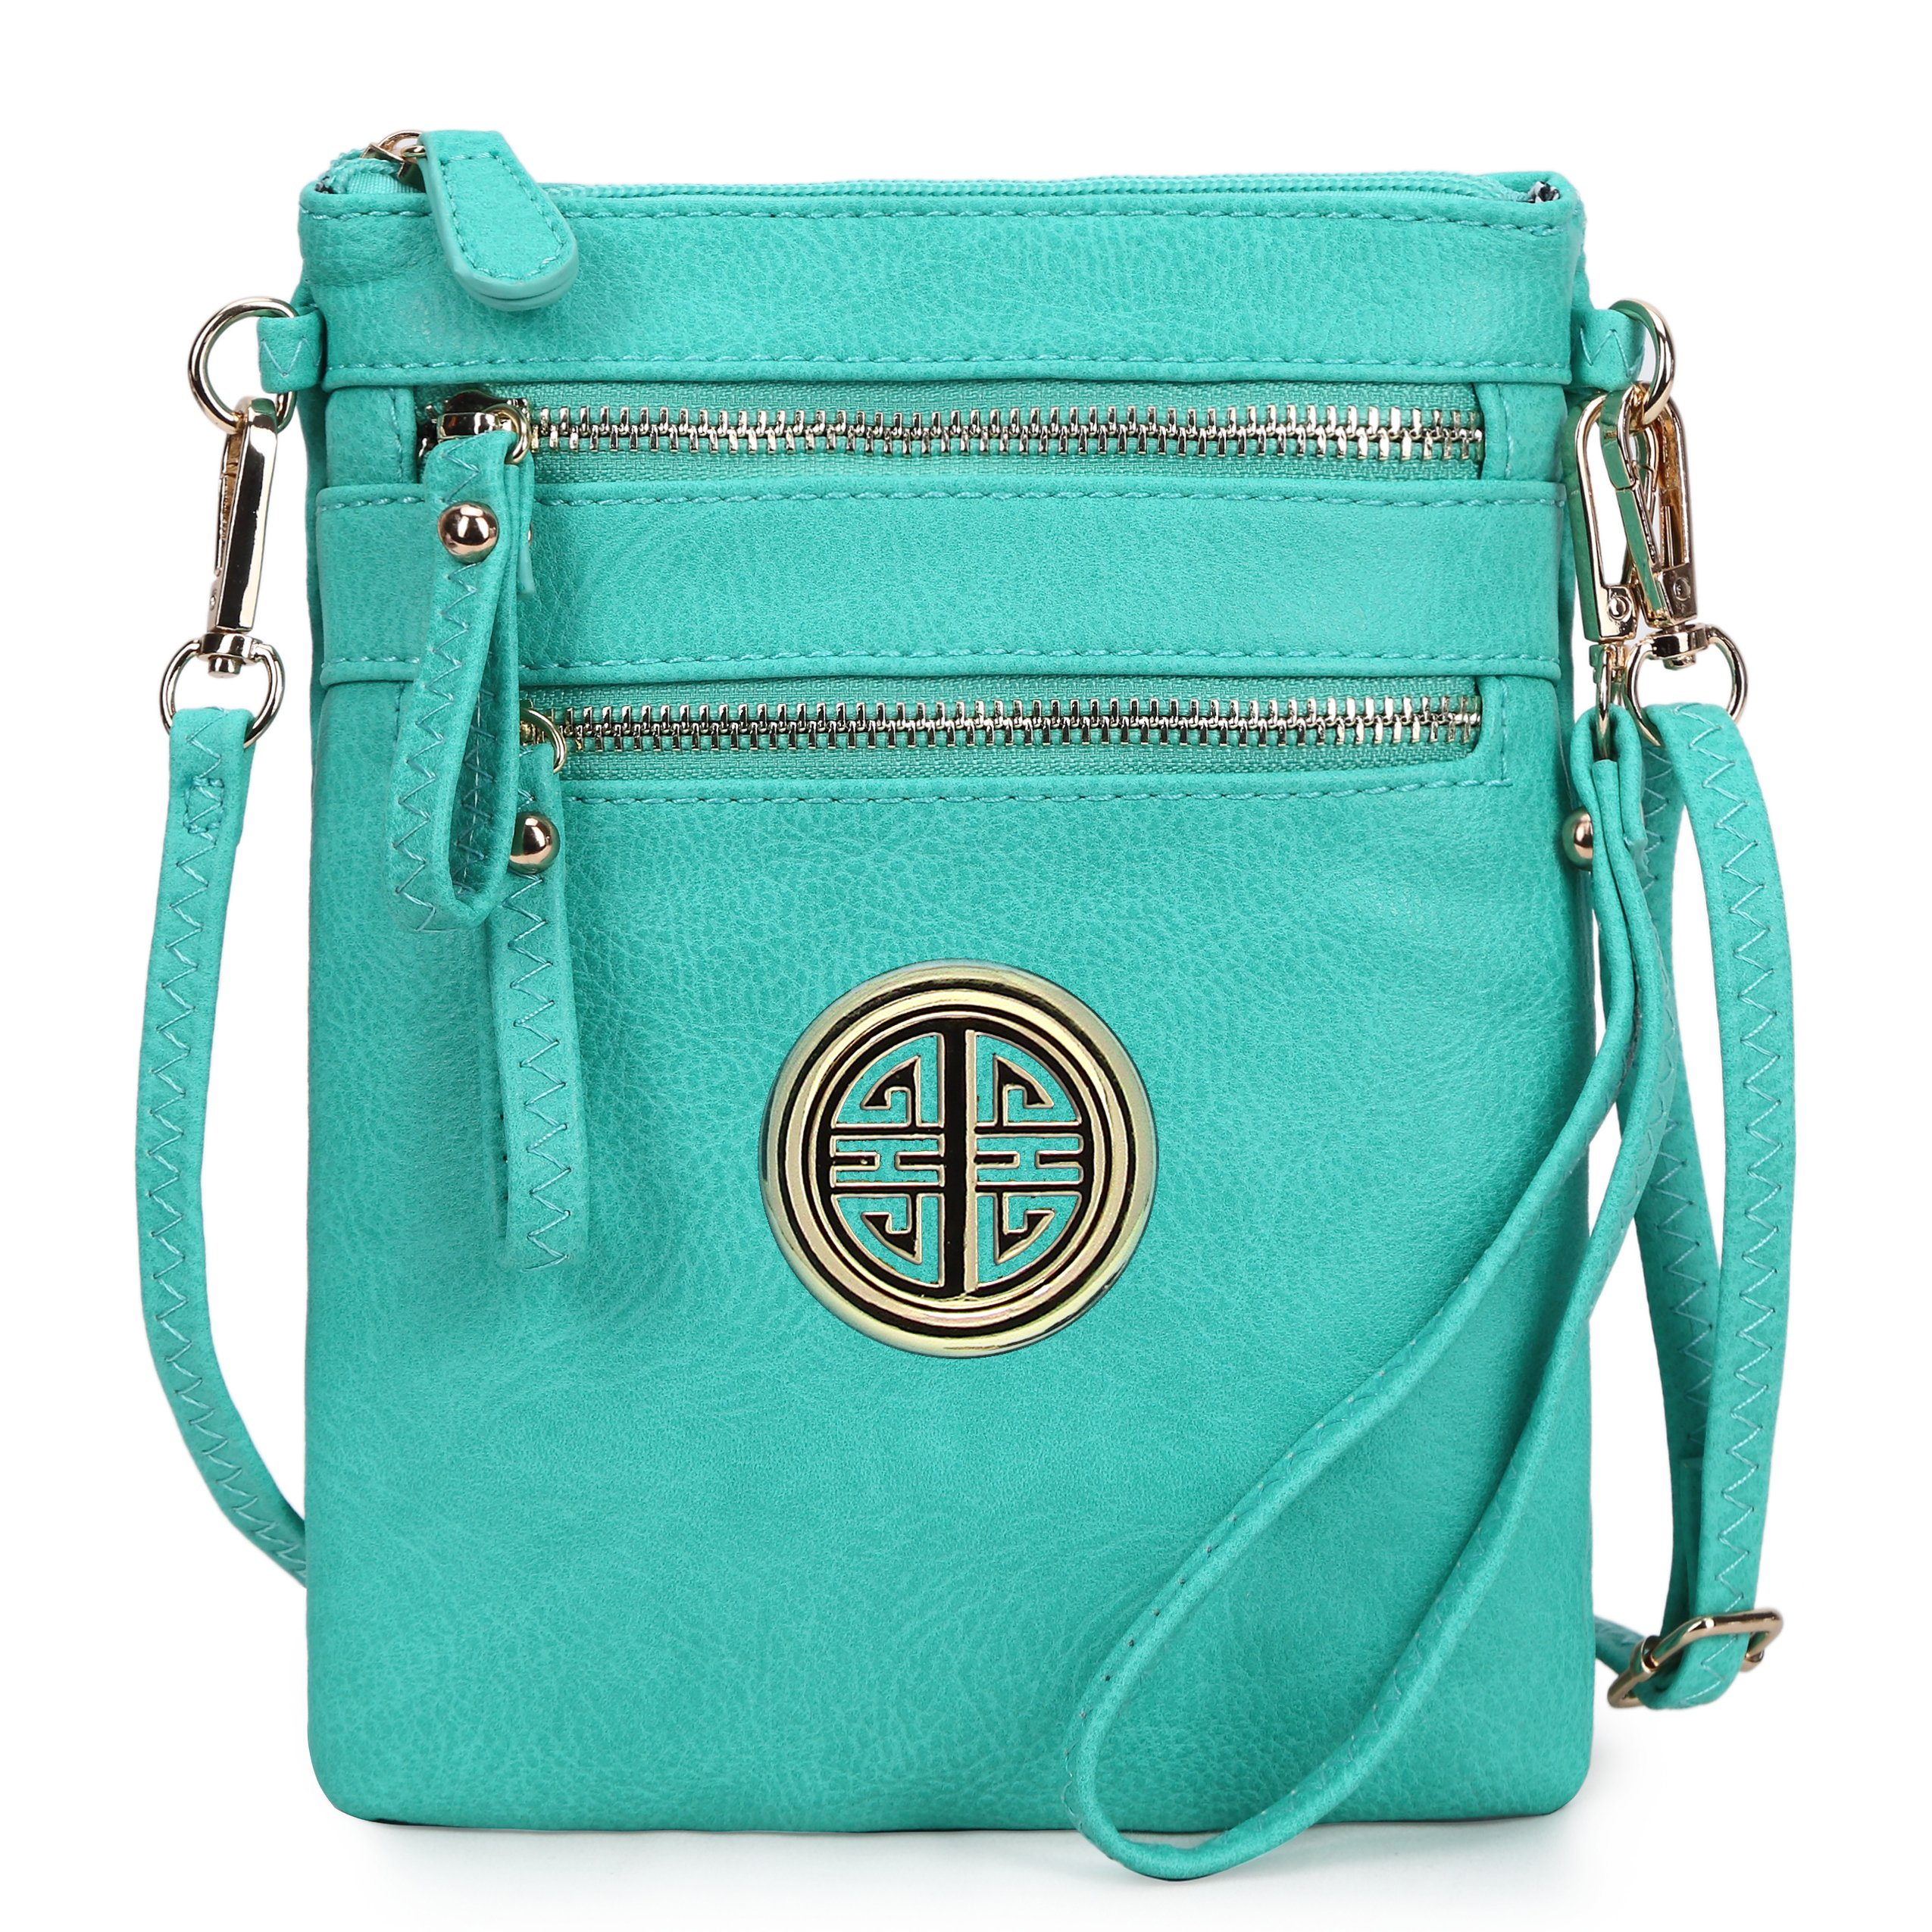 Solene Women's Faux Leather Organizer Multi Zipper Pockets Handbag With Detachable Wristlet Crossbody Bag (Turquoise)